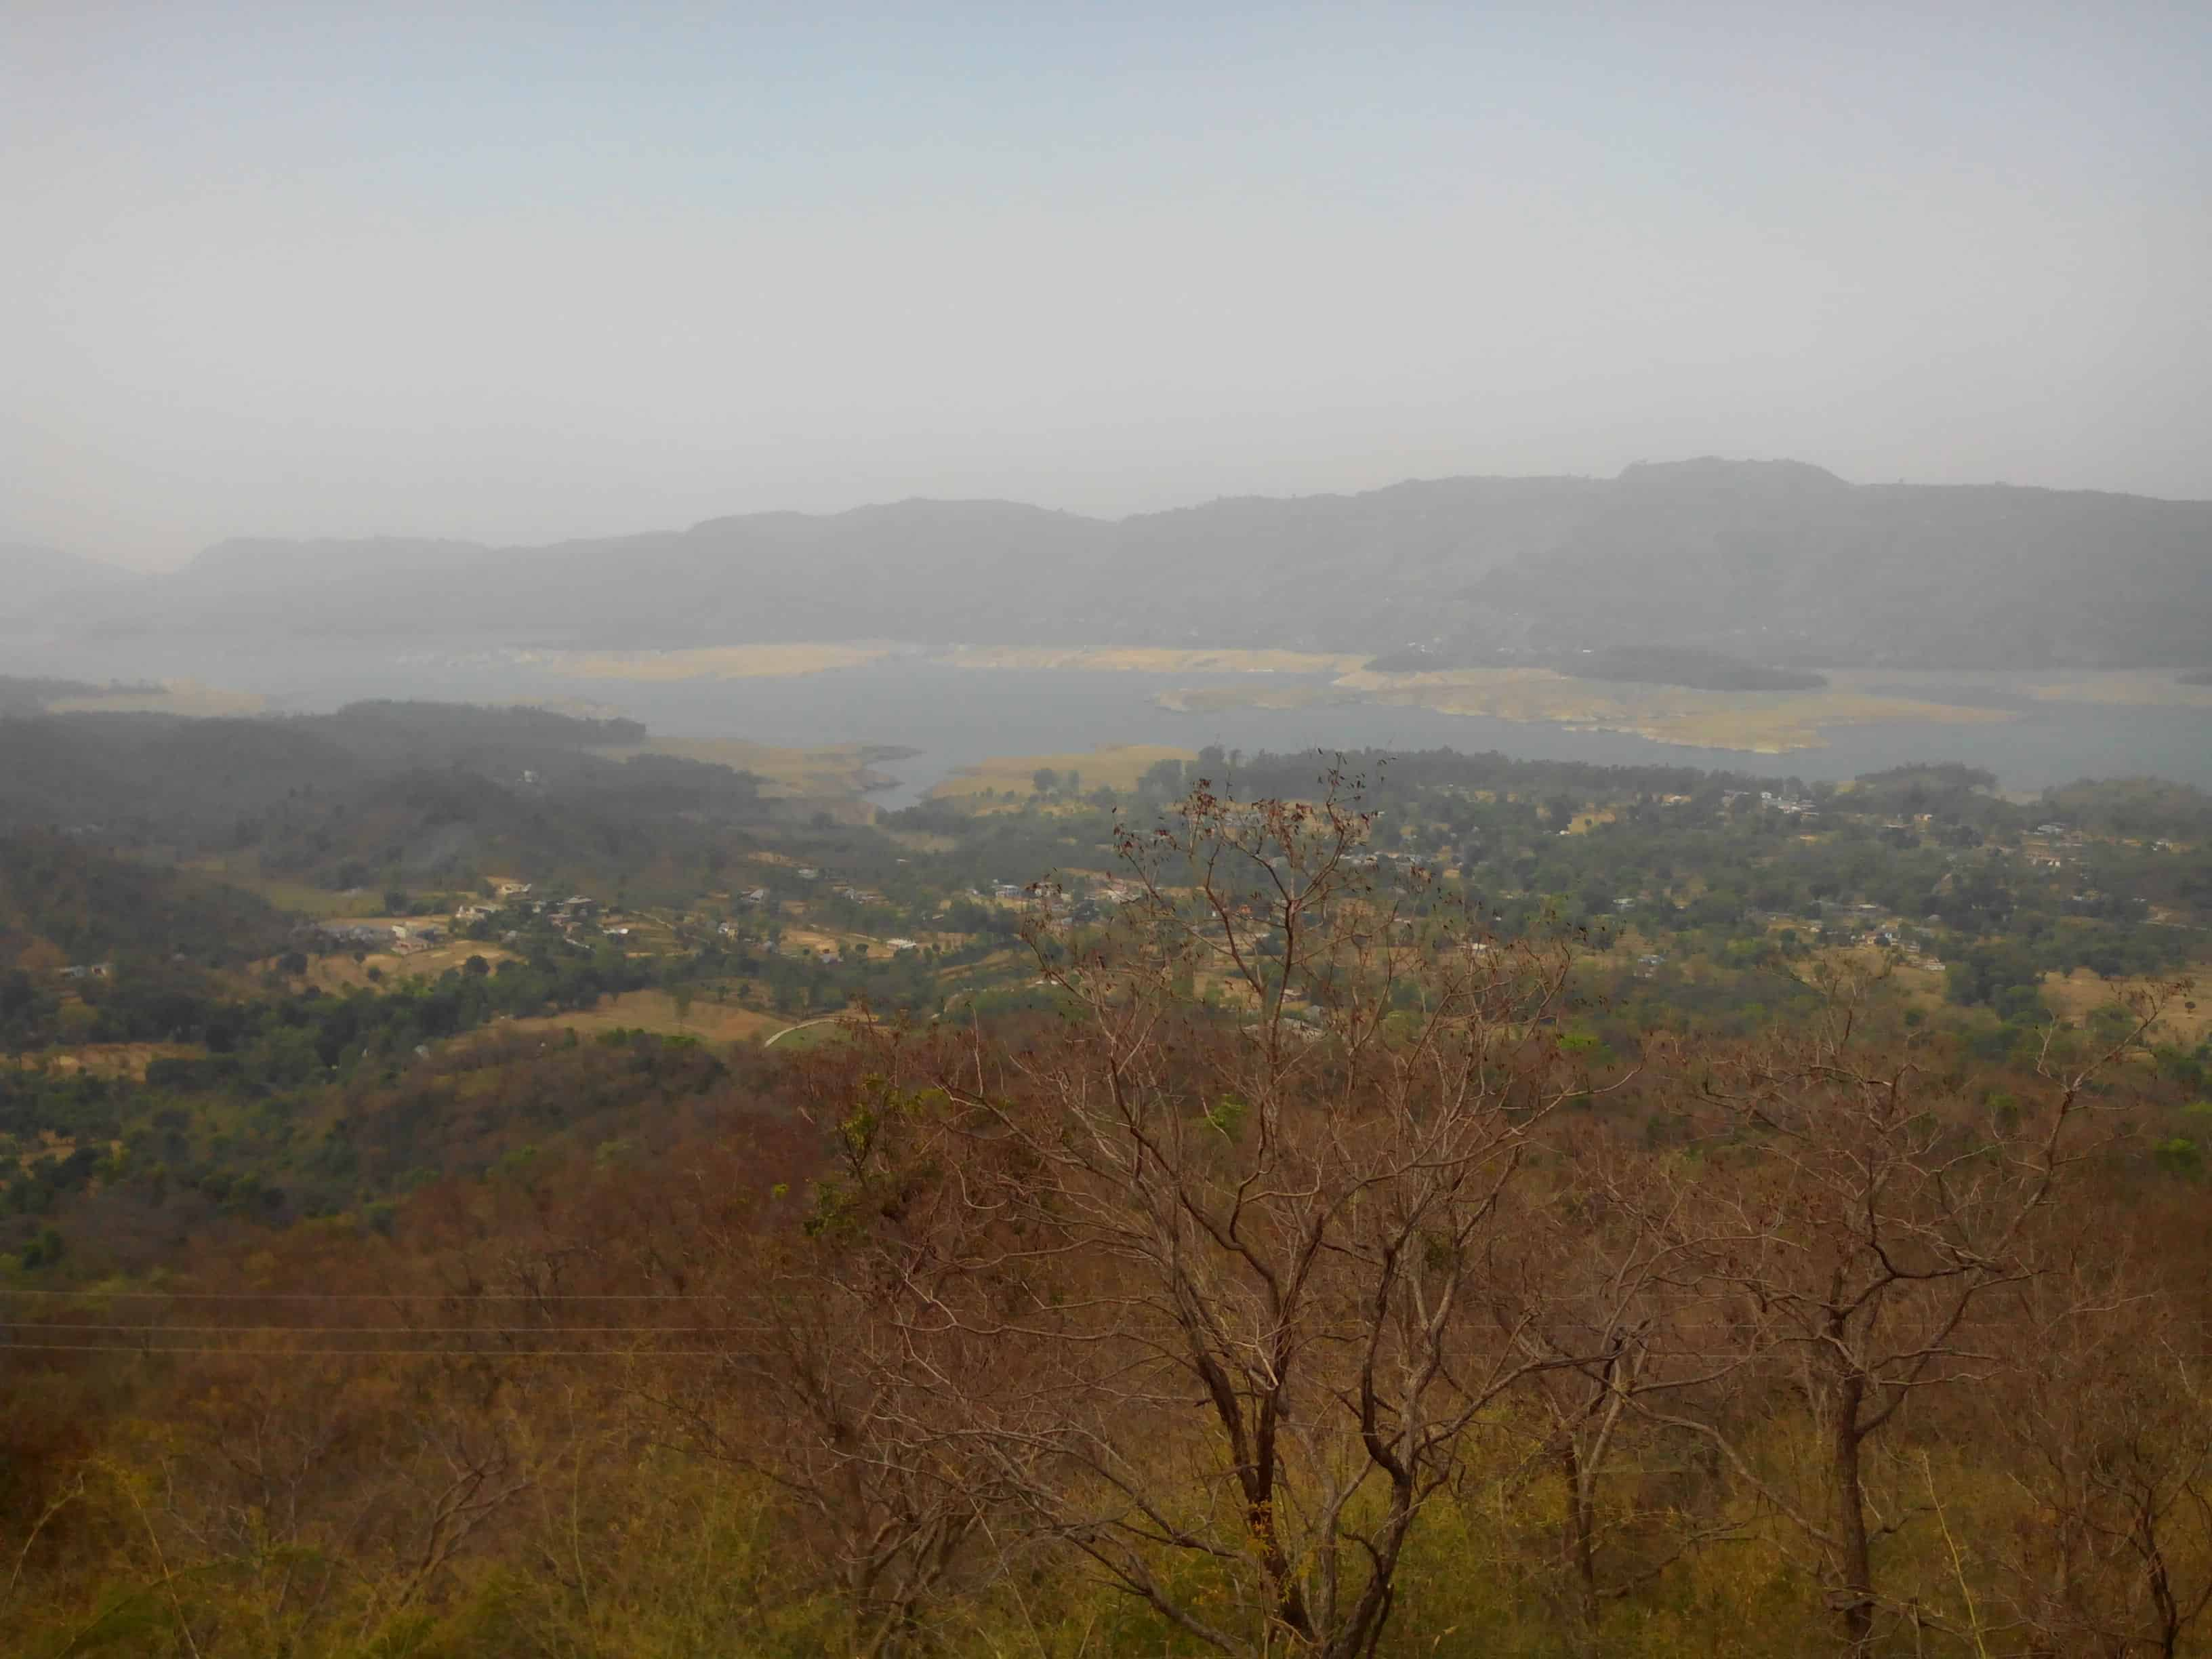 Govind Sagar as seen from Una - Bhota road